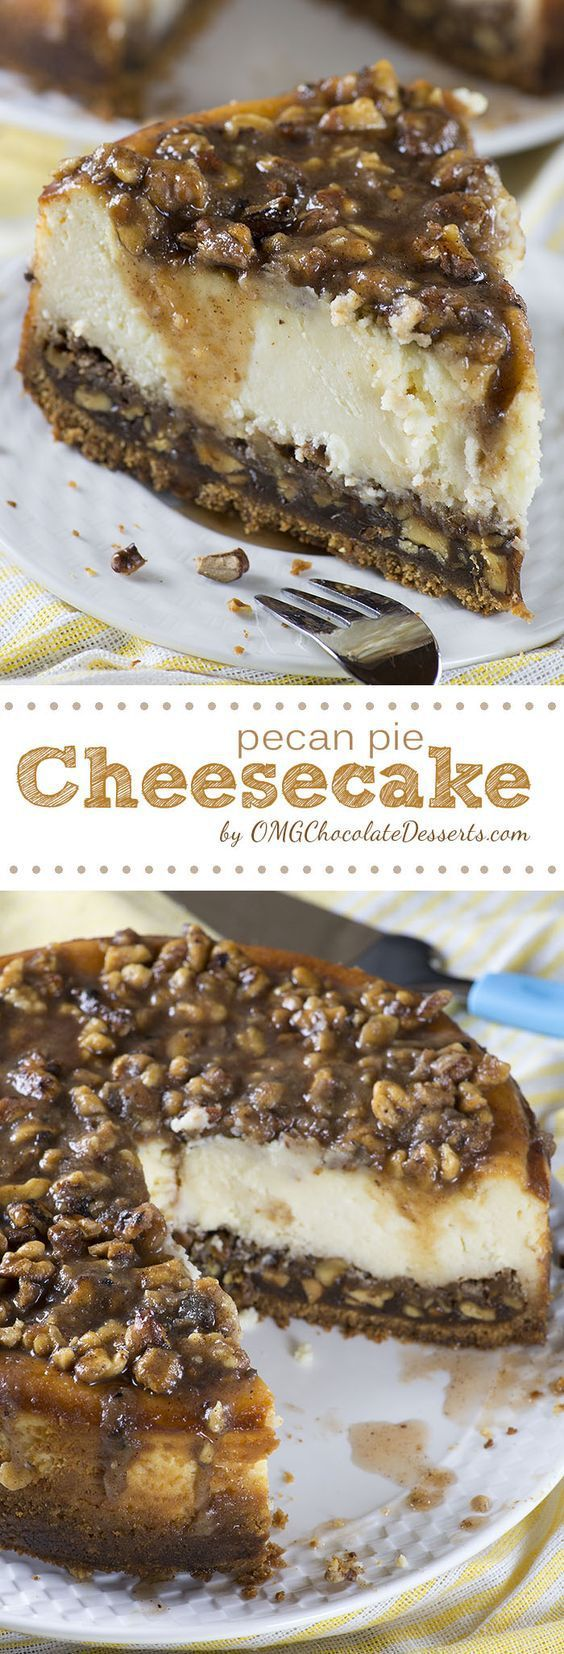 Pecan Pie Cheesecake Dessert Recipe via OMG Chocolate Desserts - Searching for a perfect autumn dessert, Pecan could be a great trick up your sleeve. If you combine them with the always decadent cheesecake, your Pecan Pie Cheesecake could become the ideal Thanksgiving treat.